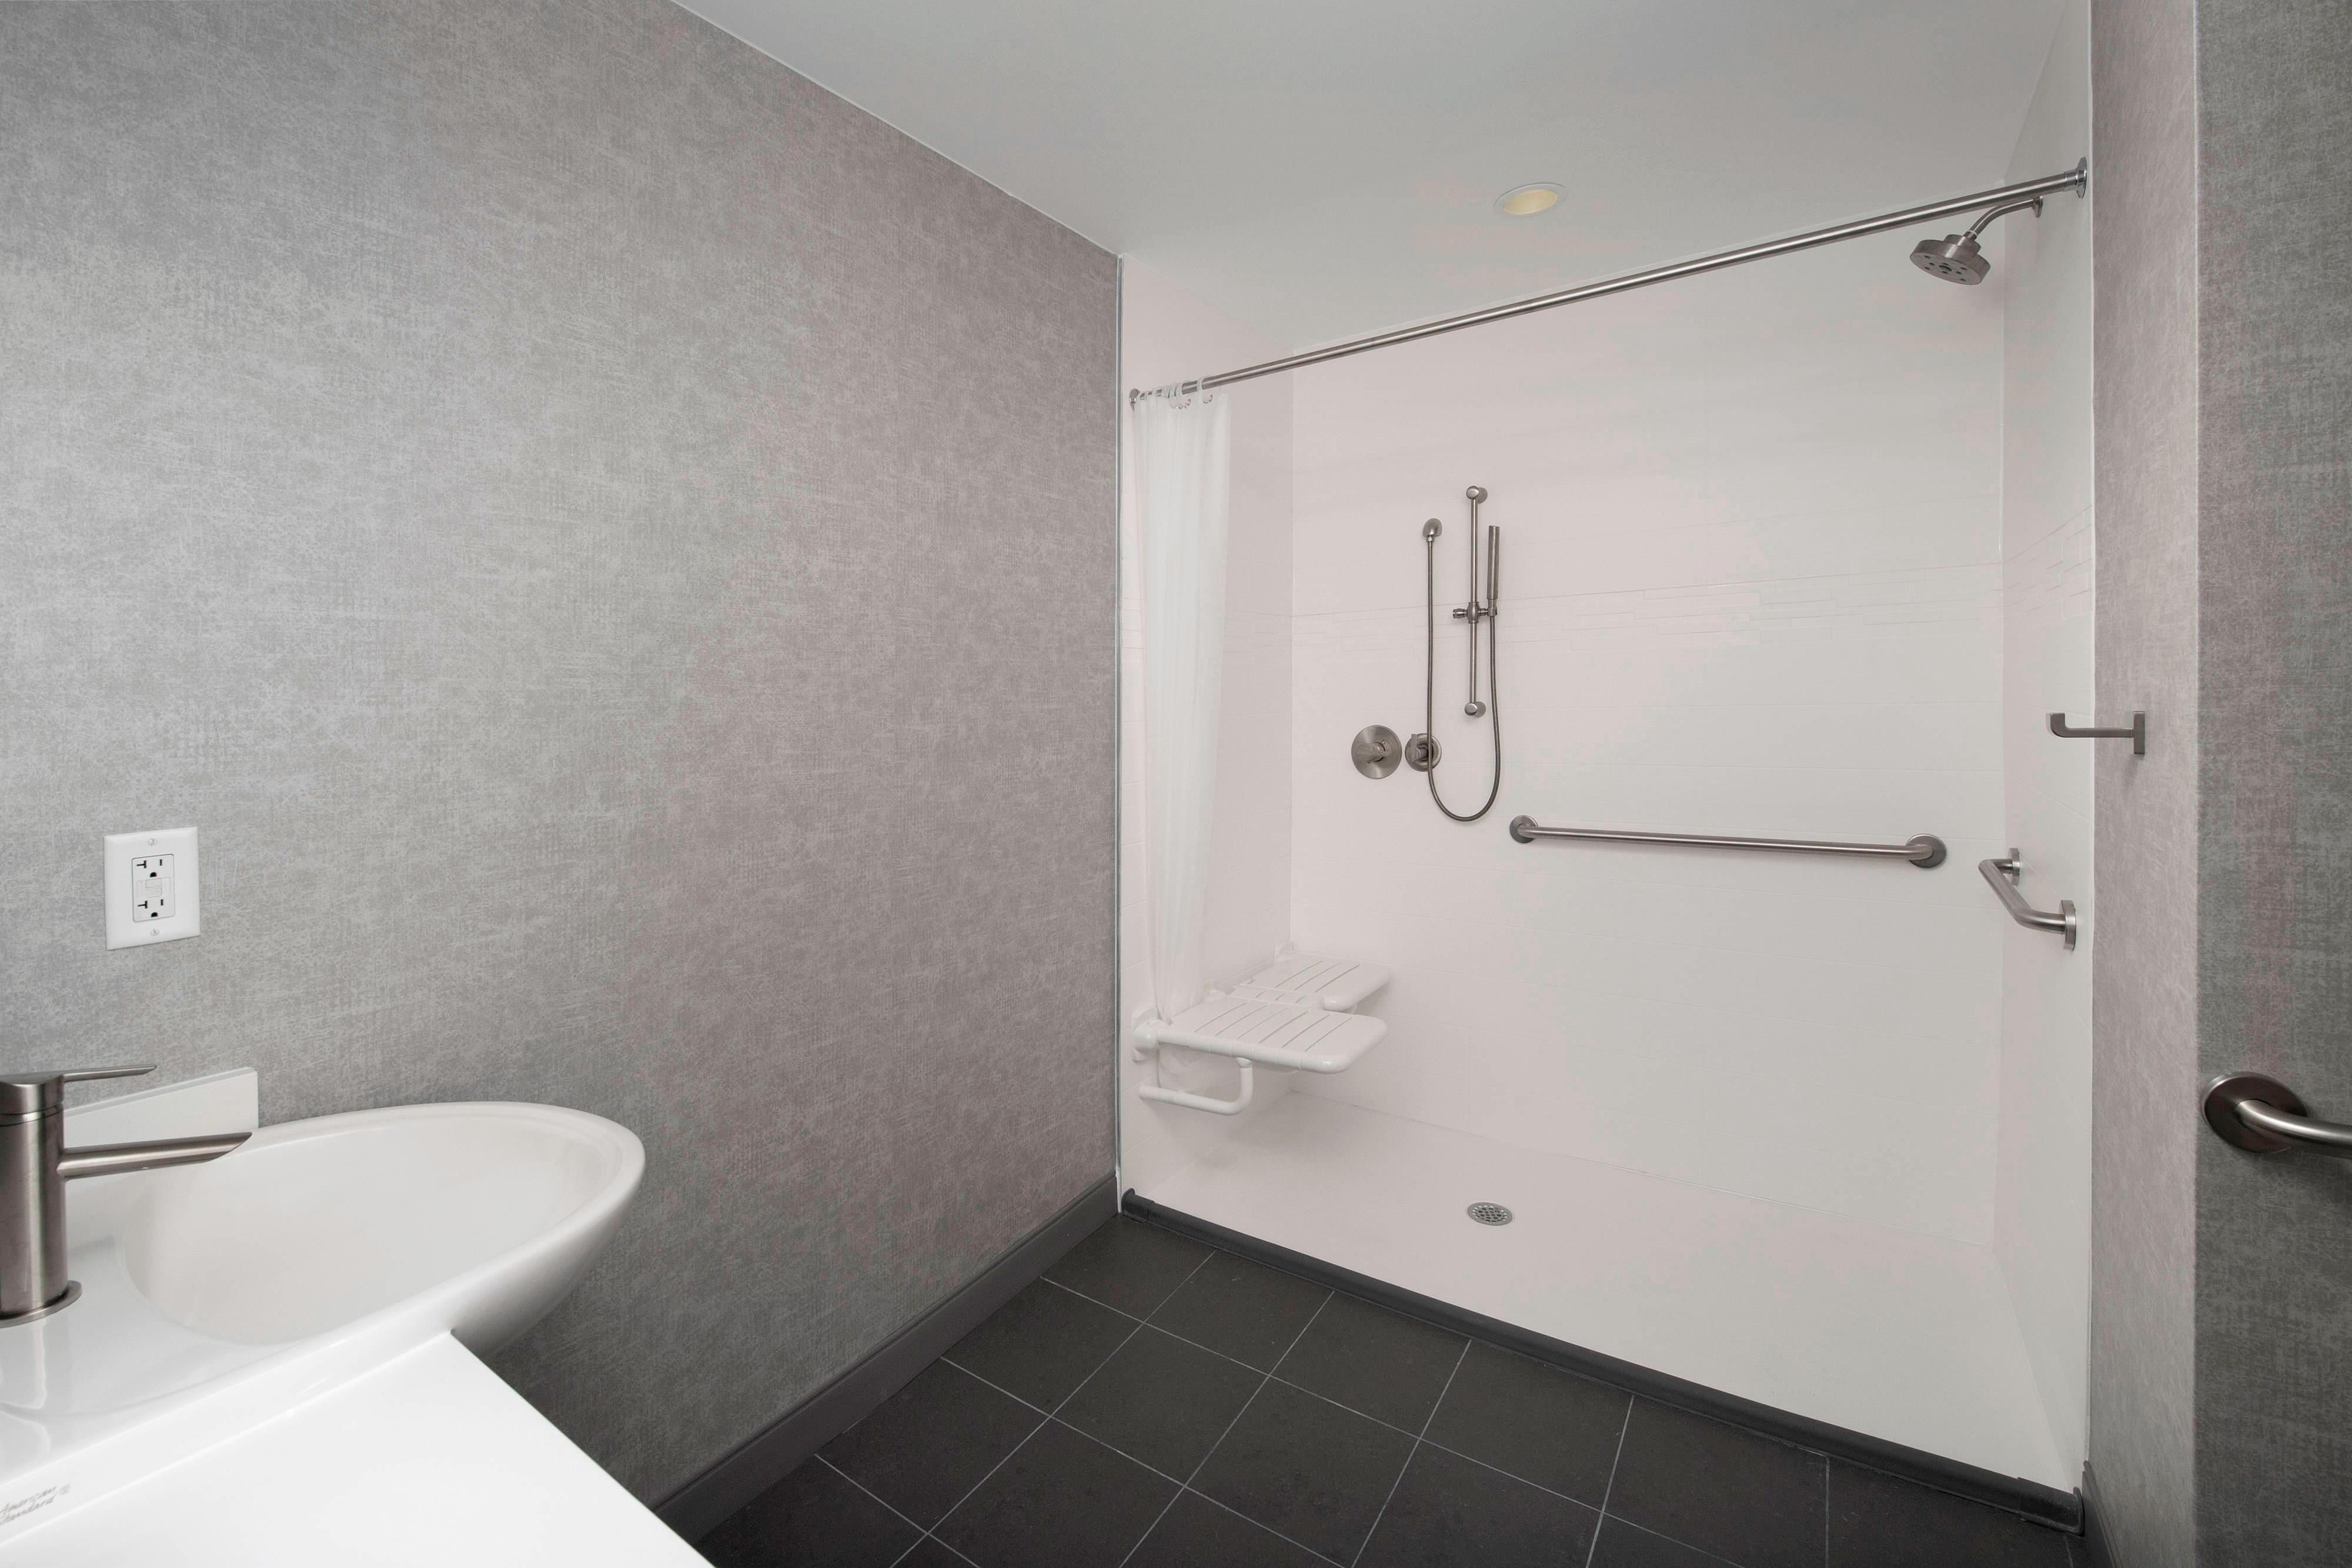 King Suite - Accessible Roll-in Shower